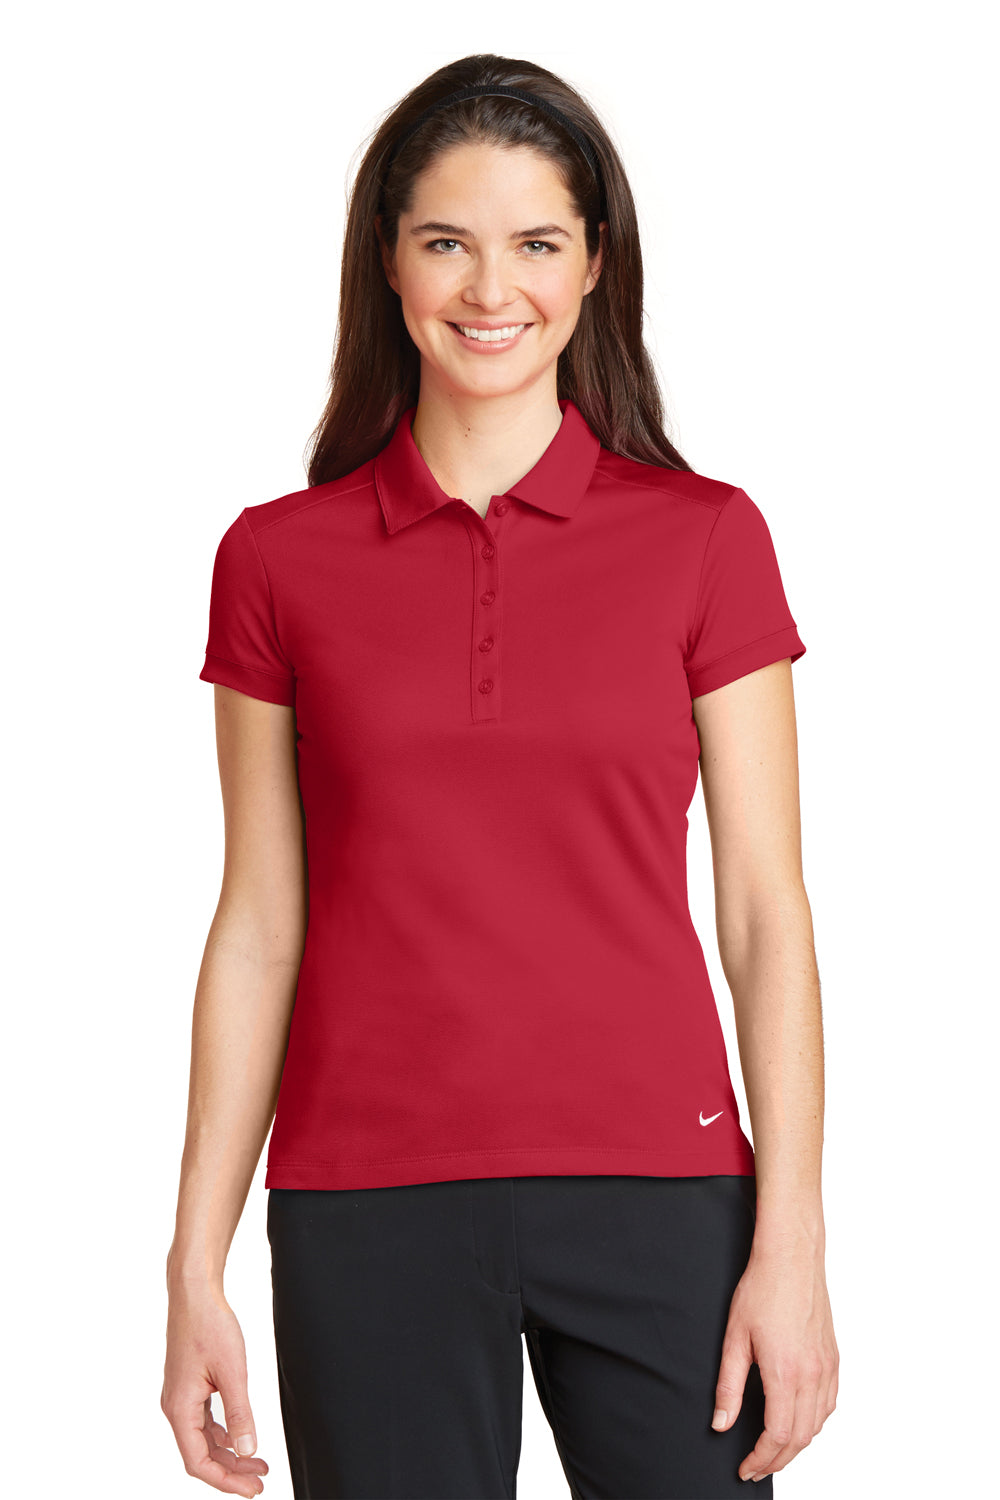 Nike 746100 Womens Icon Dri-Fit Moisture Wicking Short Sleeve Polo Shirt Red Front